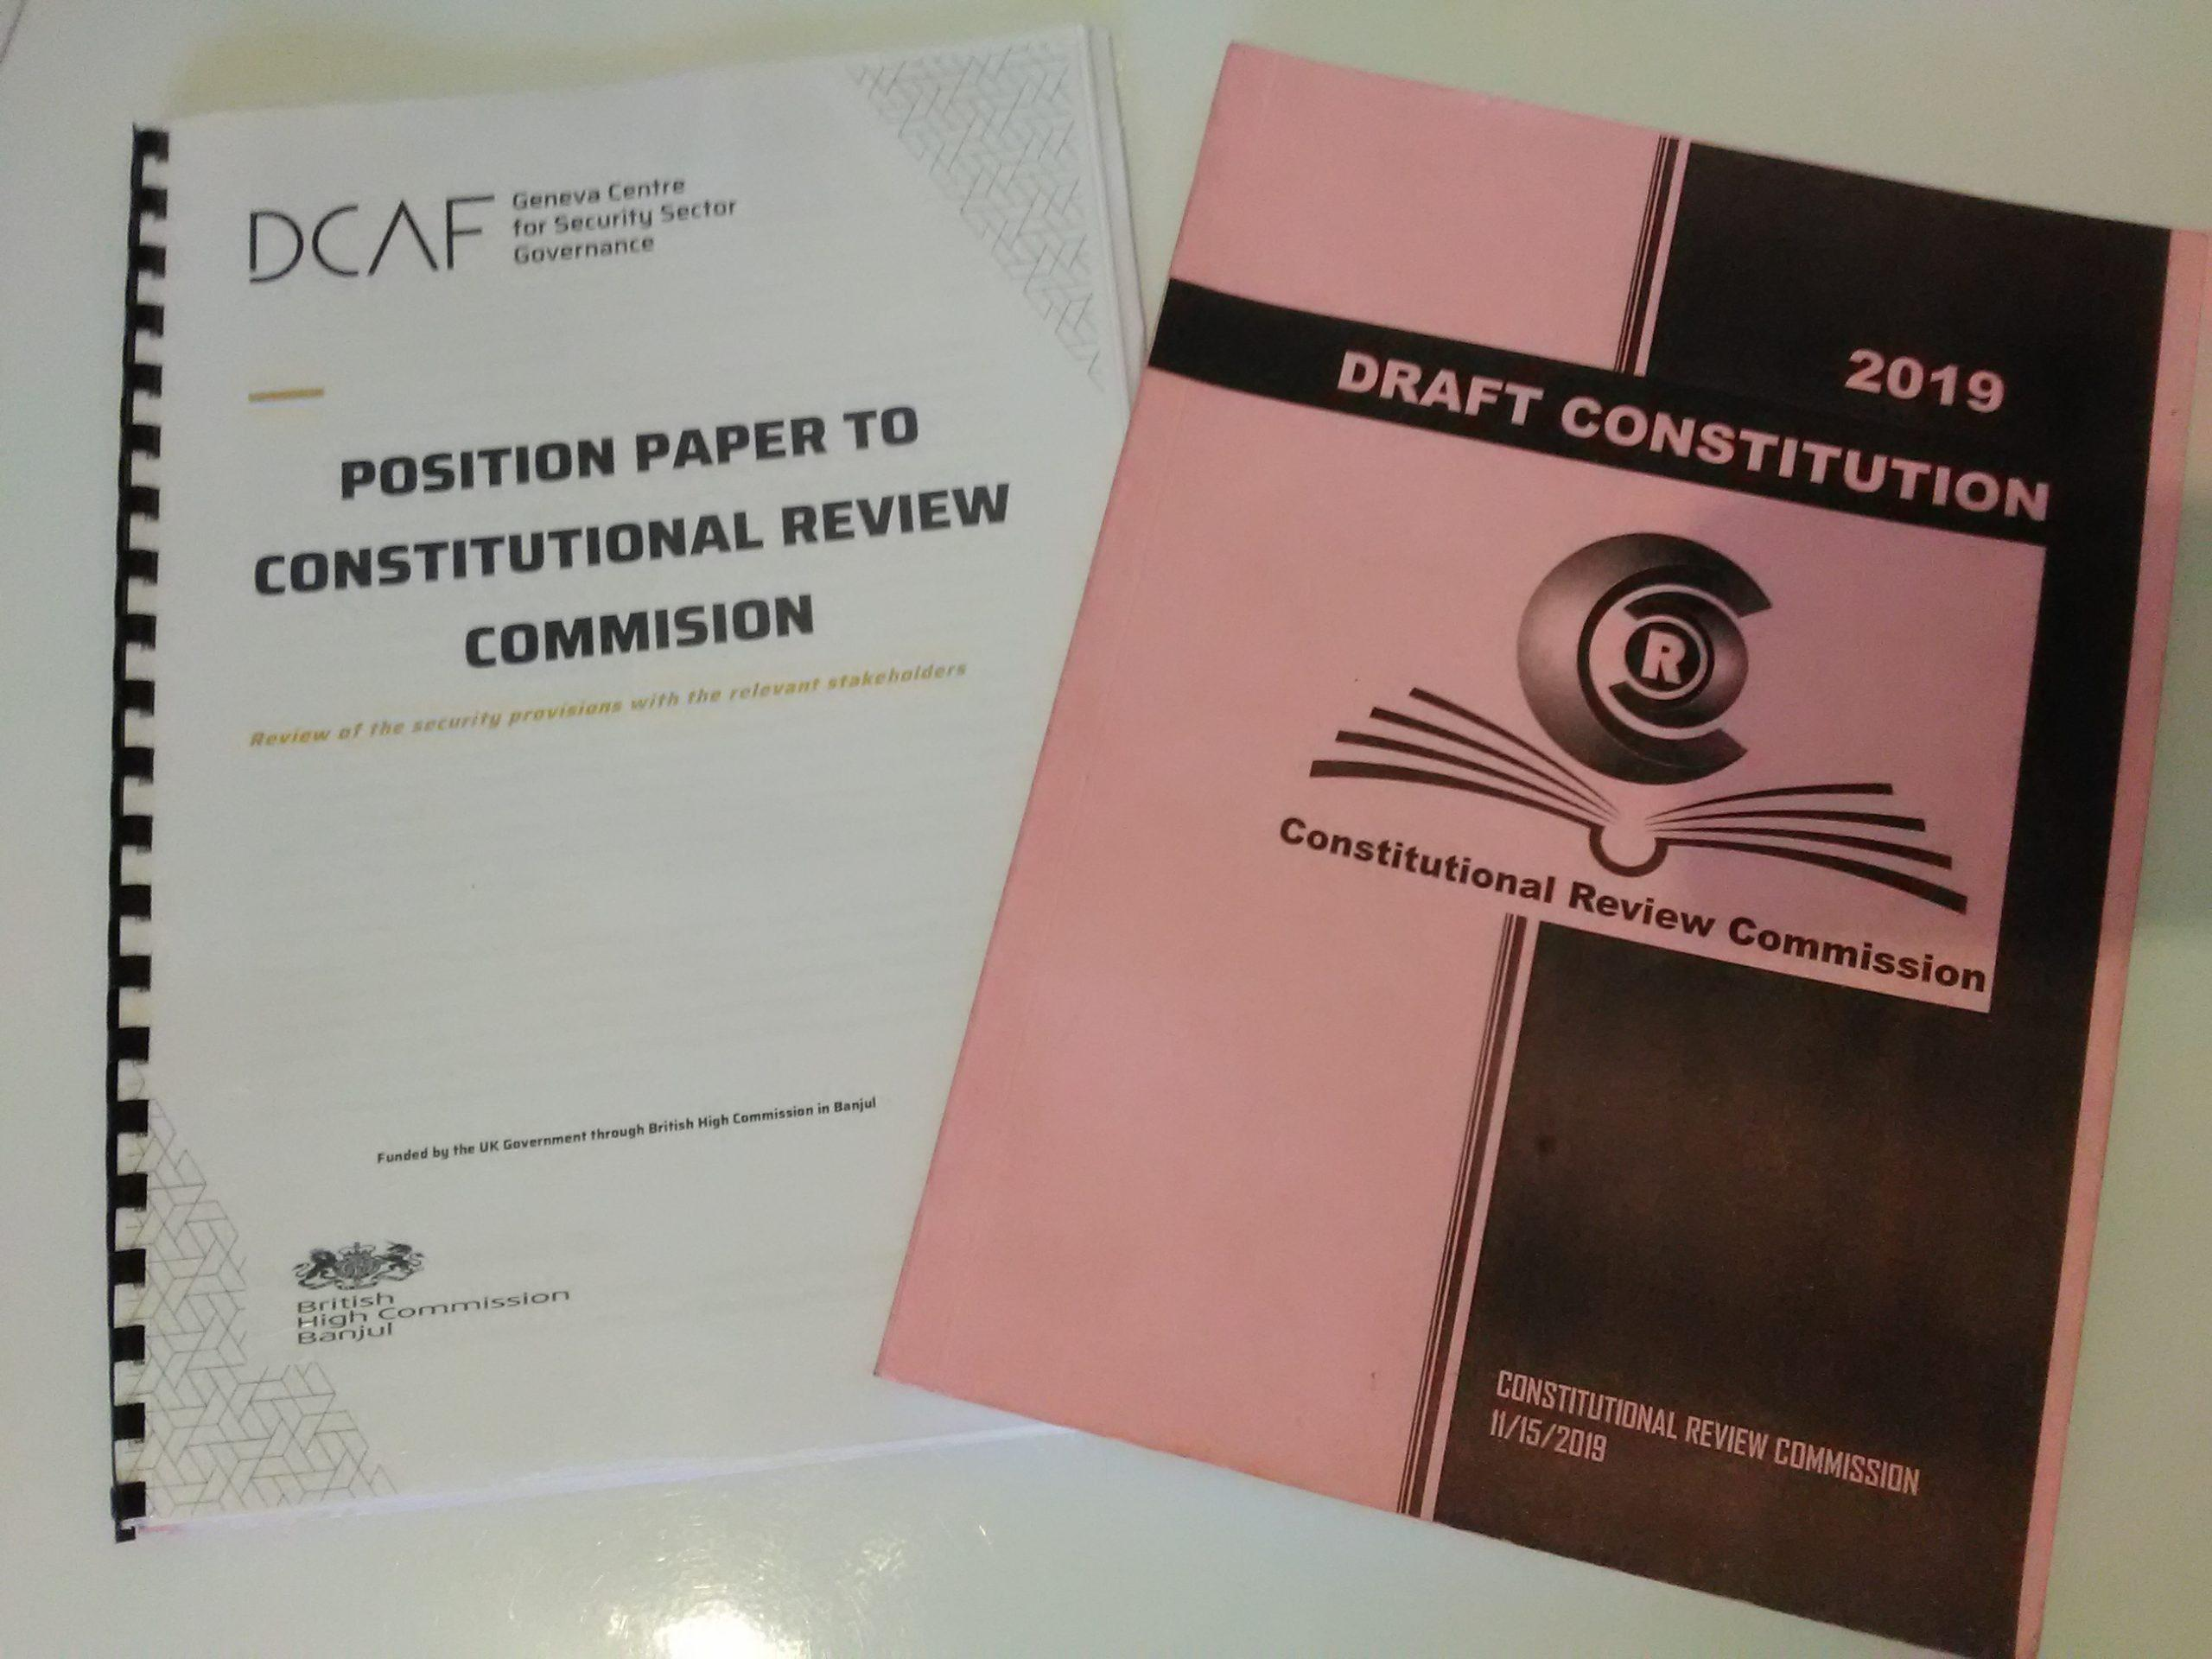 Position Paper and Draft Constitution